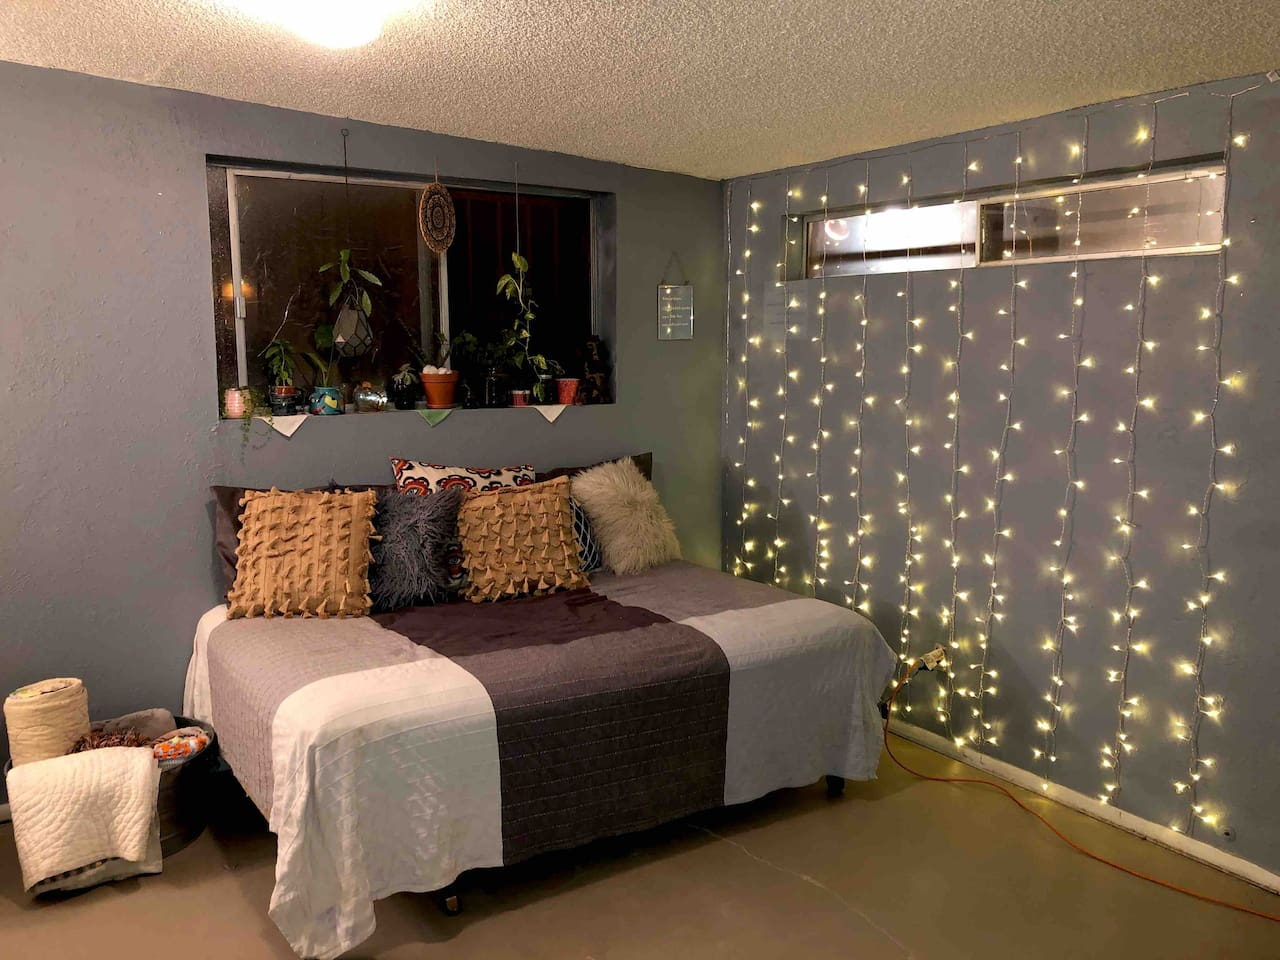 full size mattress bed with extra bedding in bucket • dangly lights & houseplants area